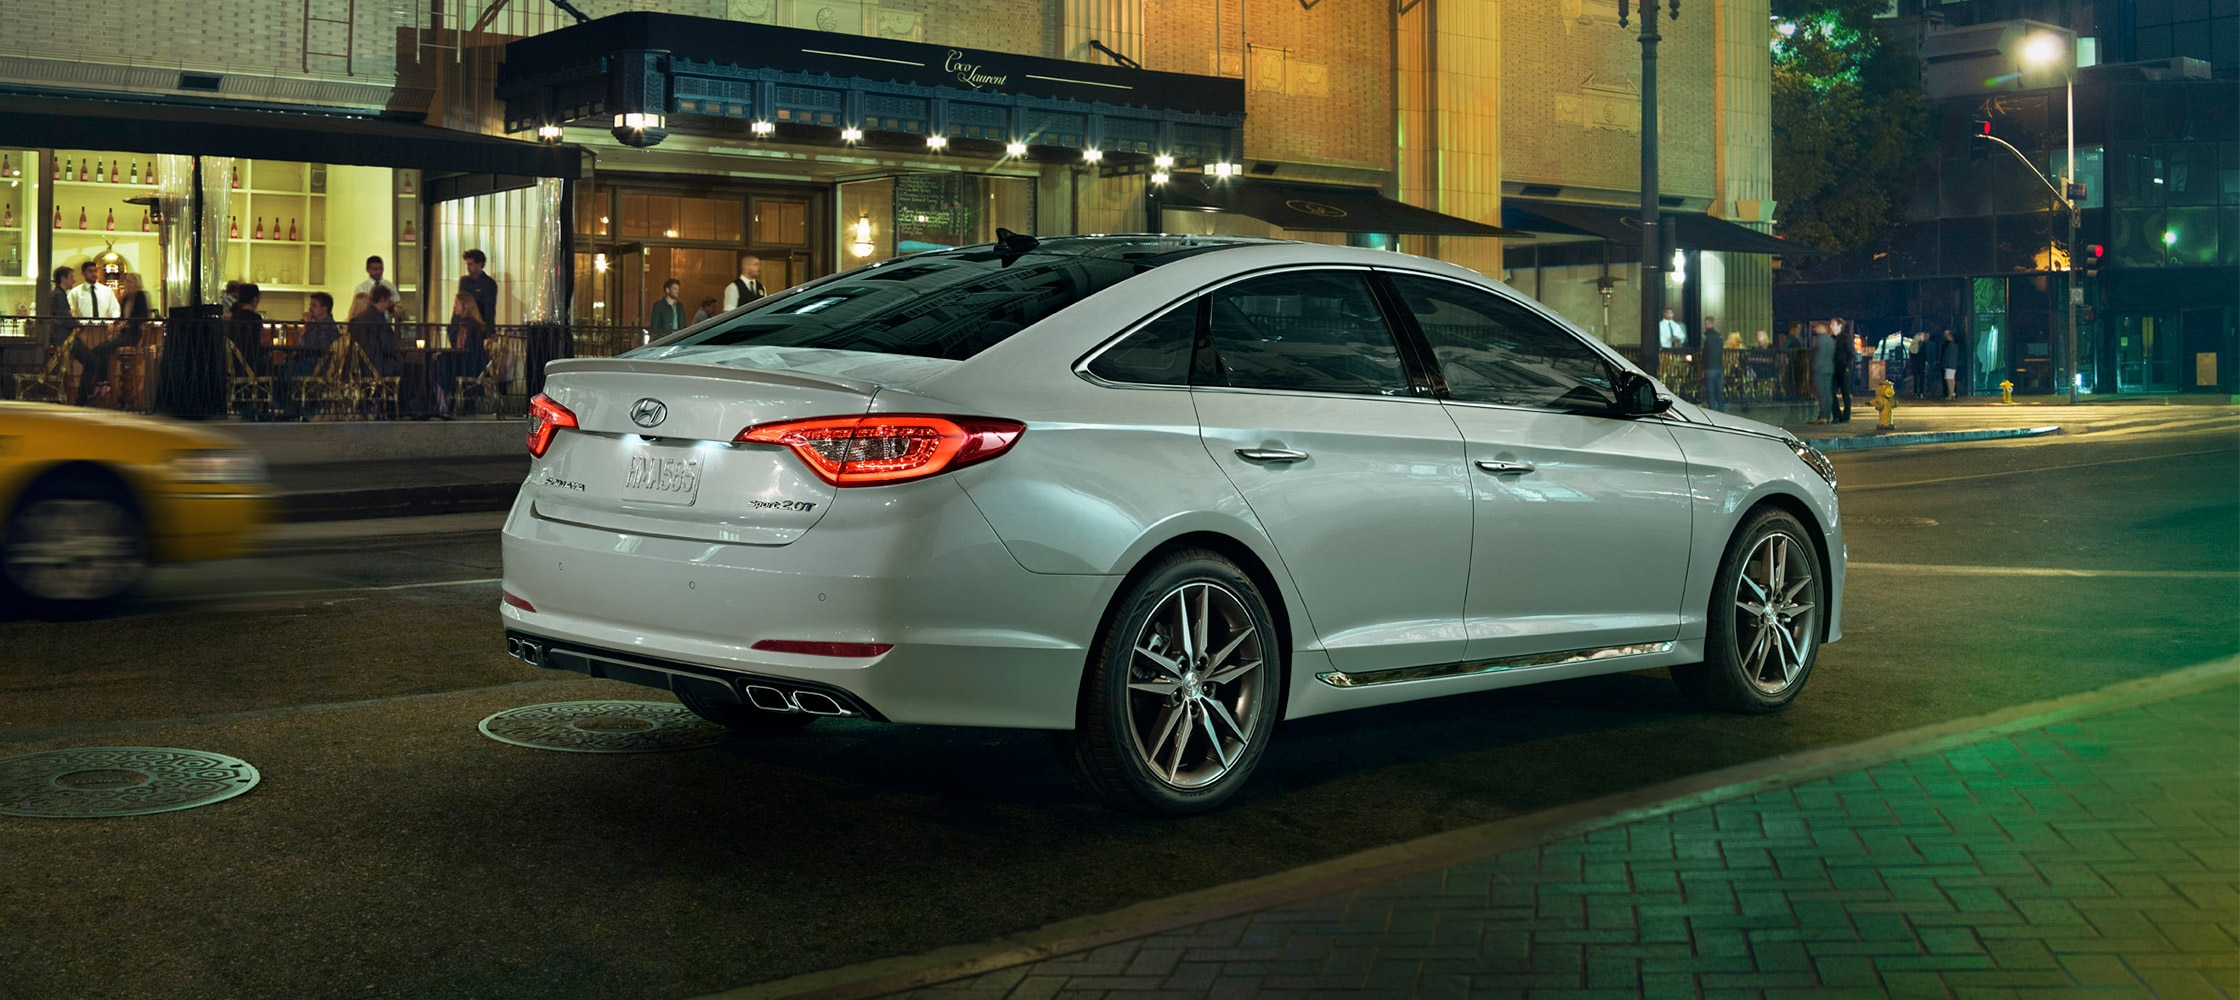 Exterior action photo of white Hyundai Sonata 2017 following another car at a safe distance